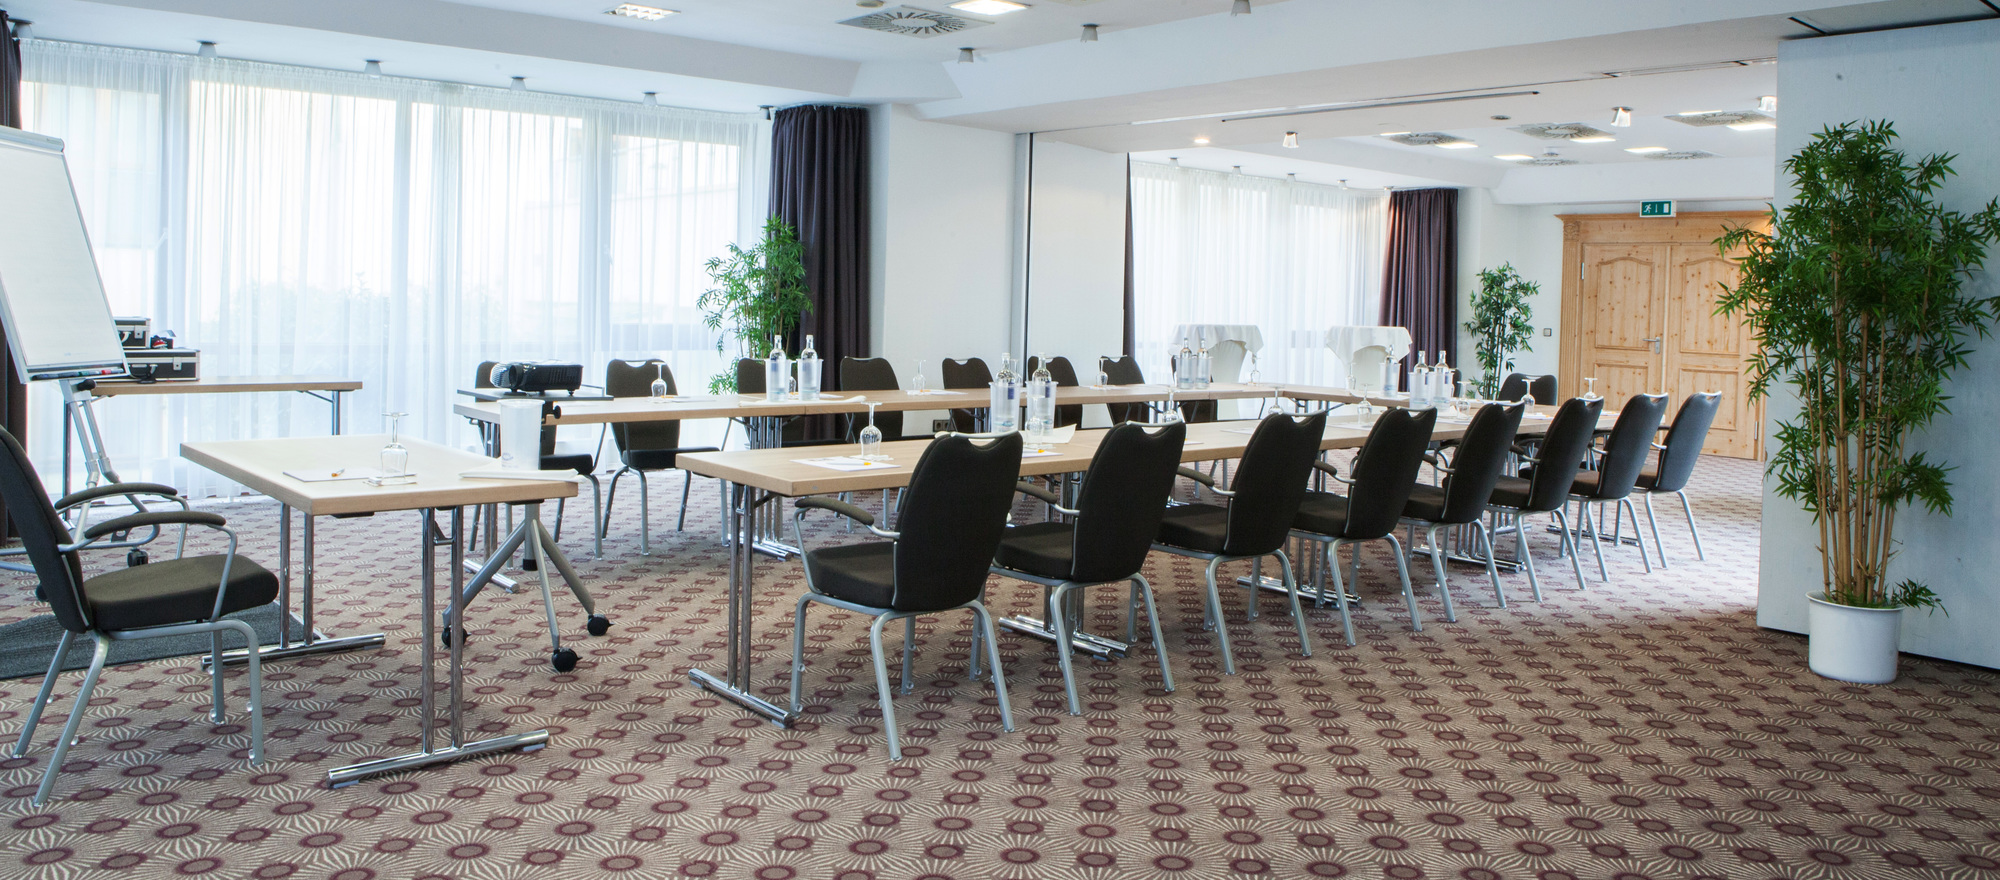 7 meetings and seminar rooms at the 4-star hotel Ringhotel Nassau-Oranien in Limburg/Hadamar